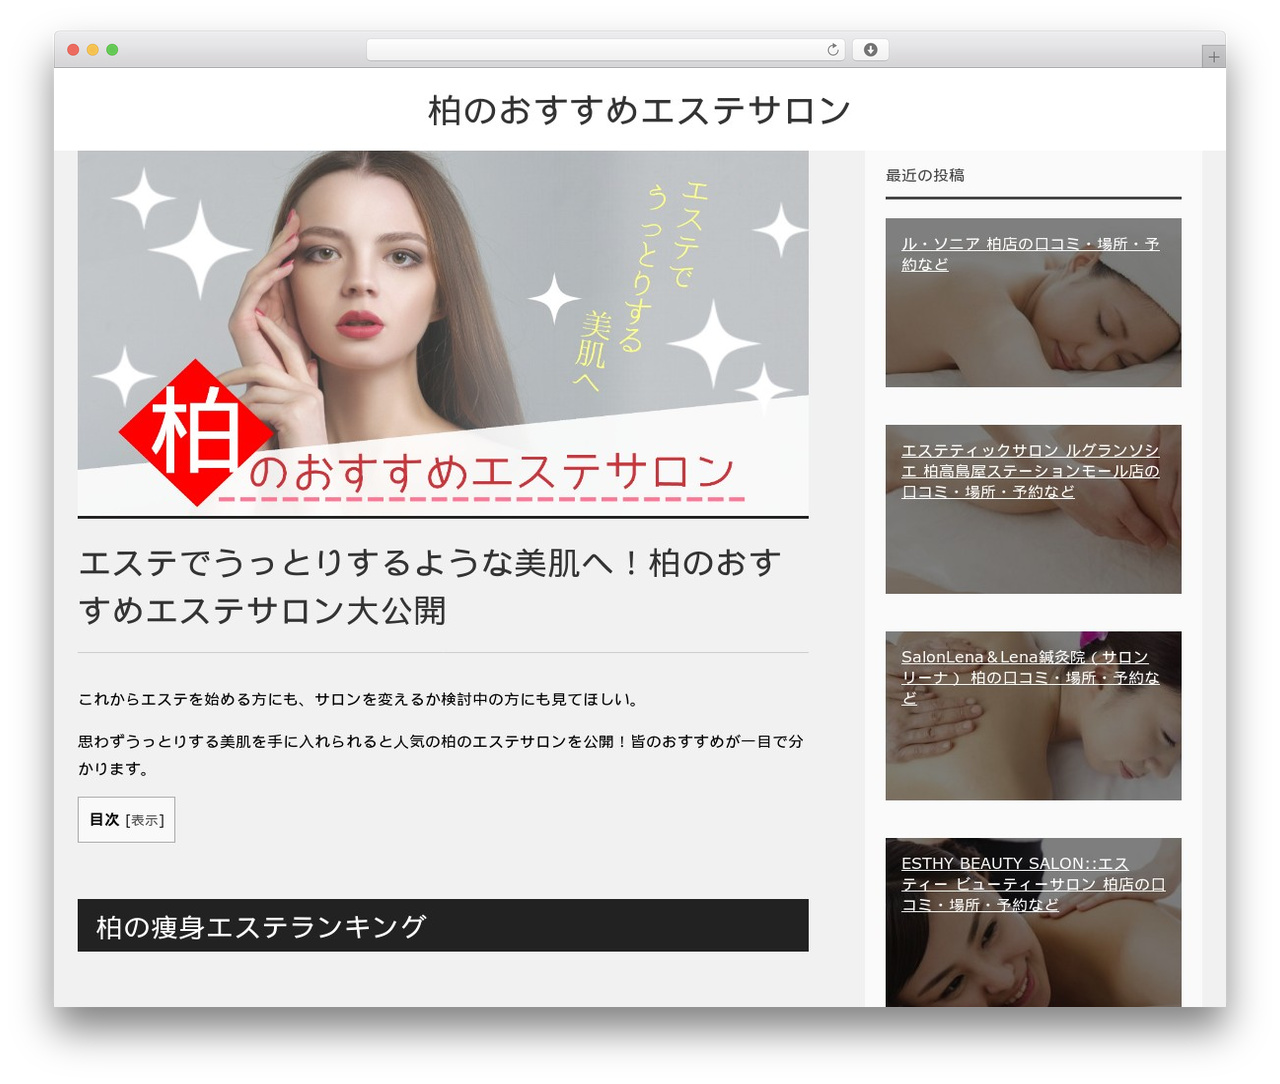 賢威7.0 クール版 WordPress theme - xn--ick8azb8731b.xyz